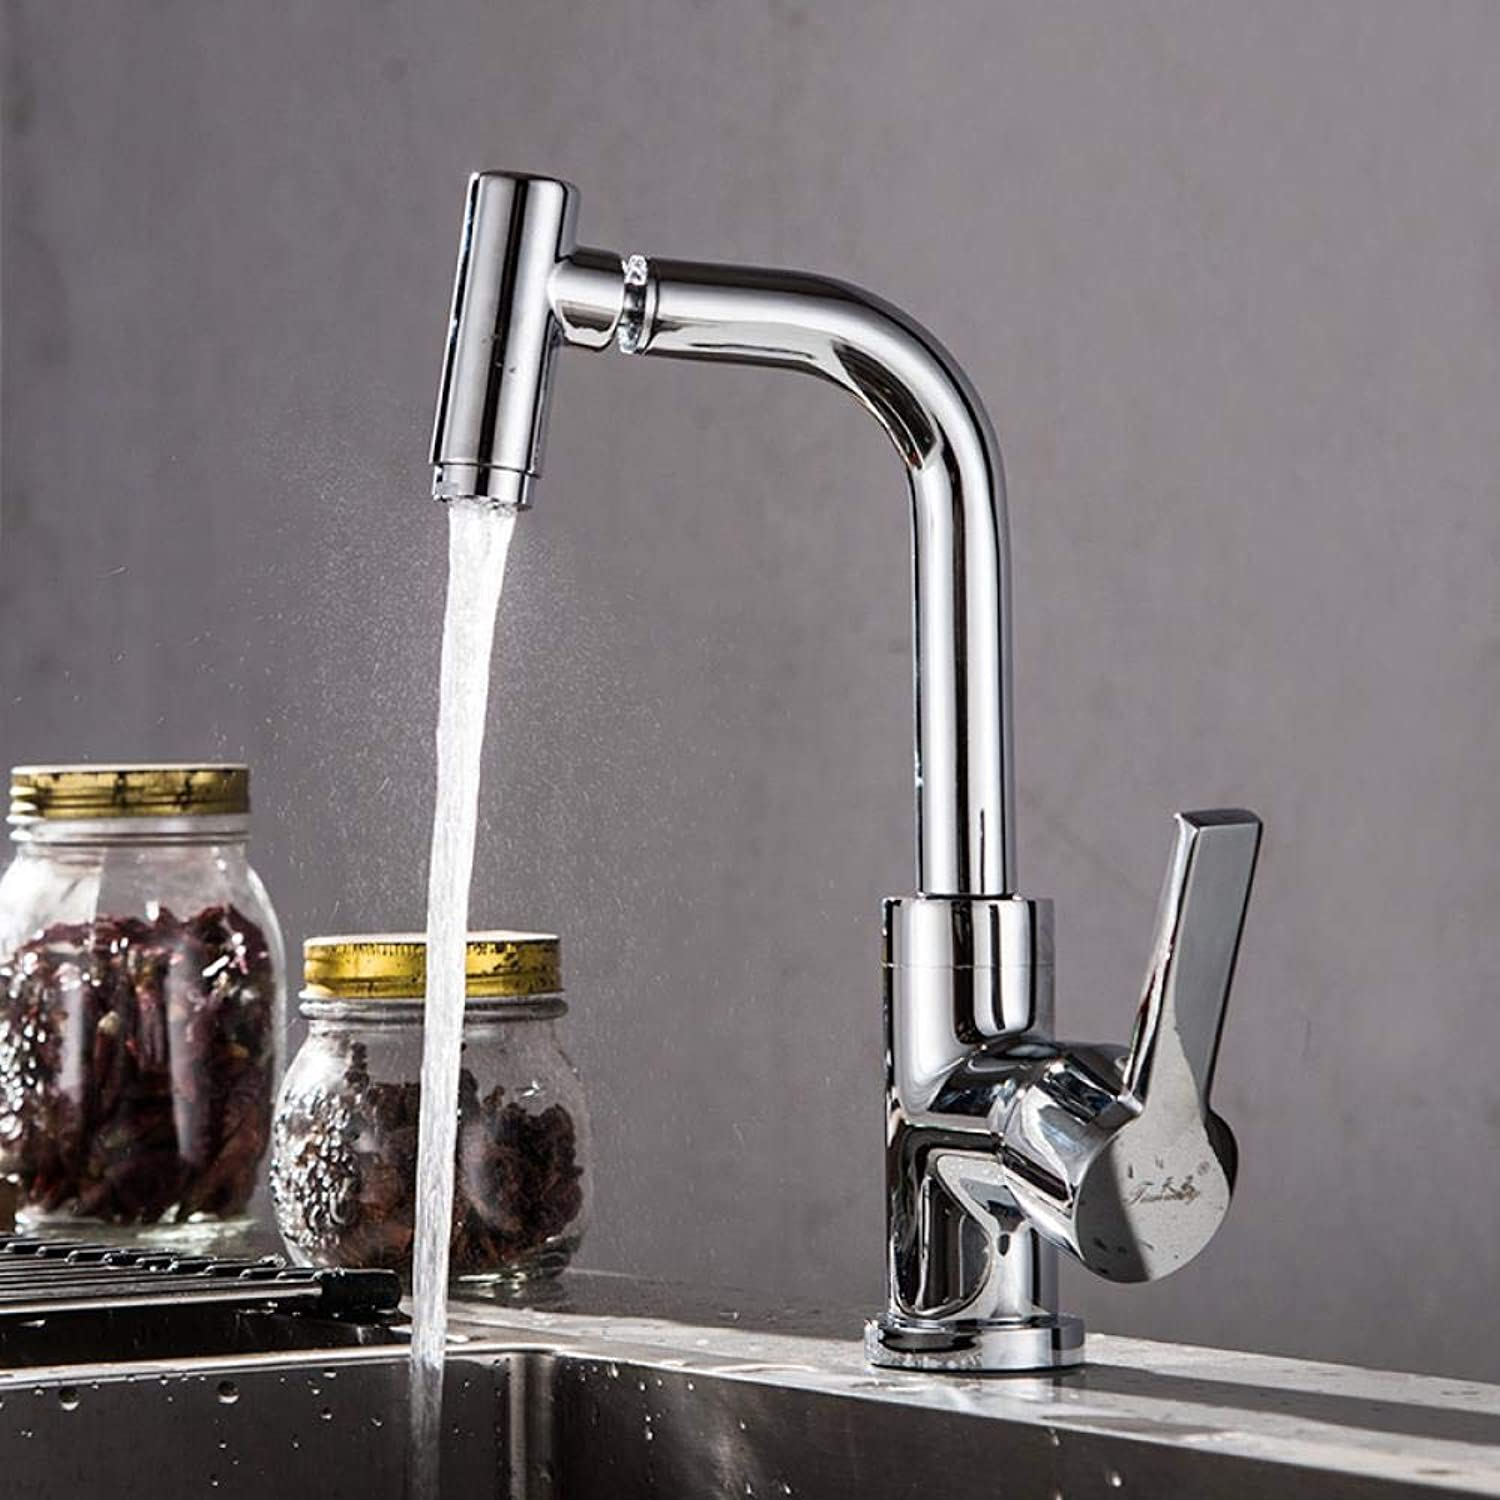 redating Hot and Cold Basin Washbasin Kitchen Sink Faucet Z1077